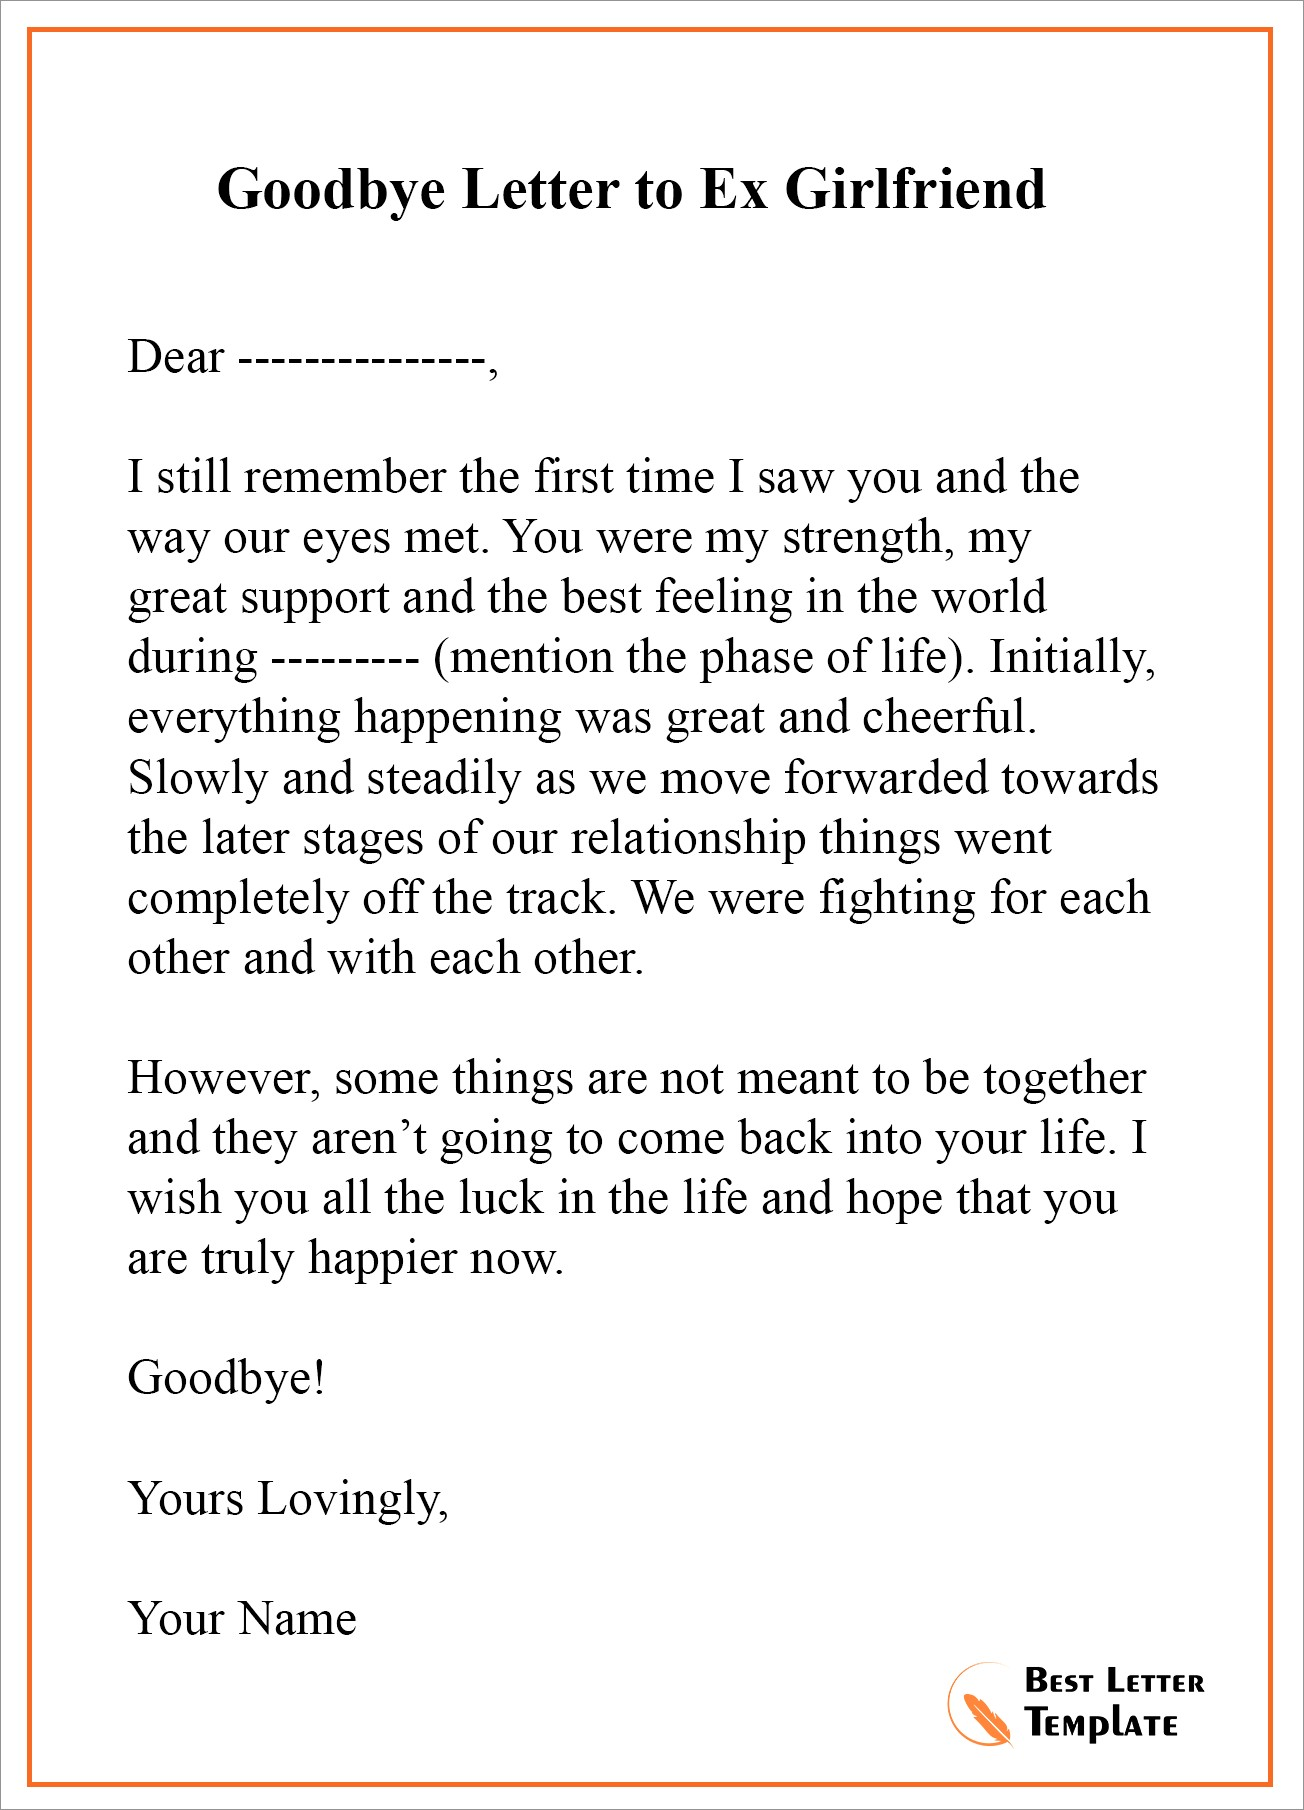 Letter To Ex Girlfriend